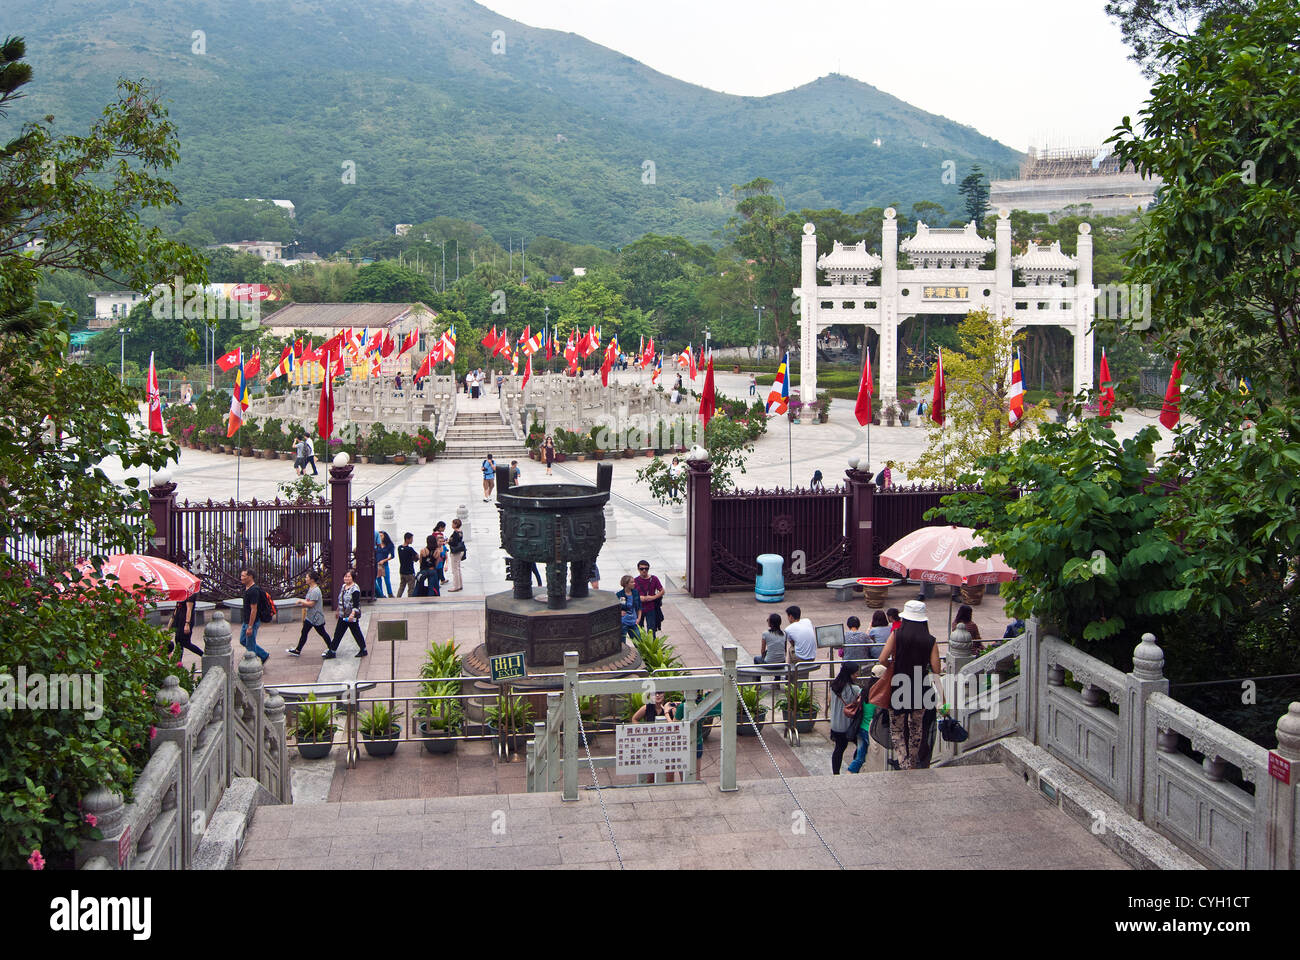 Gateway to Po Lin Monastery from the steps to the Tian Tan Buddha, Lantau Island, Hong Kong - Stock Image